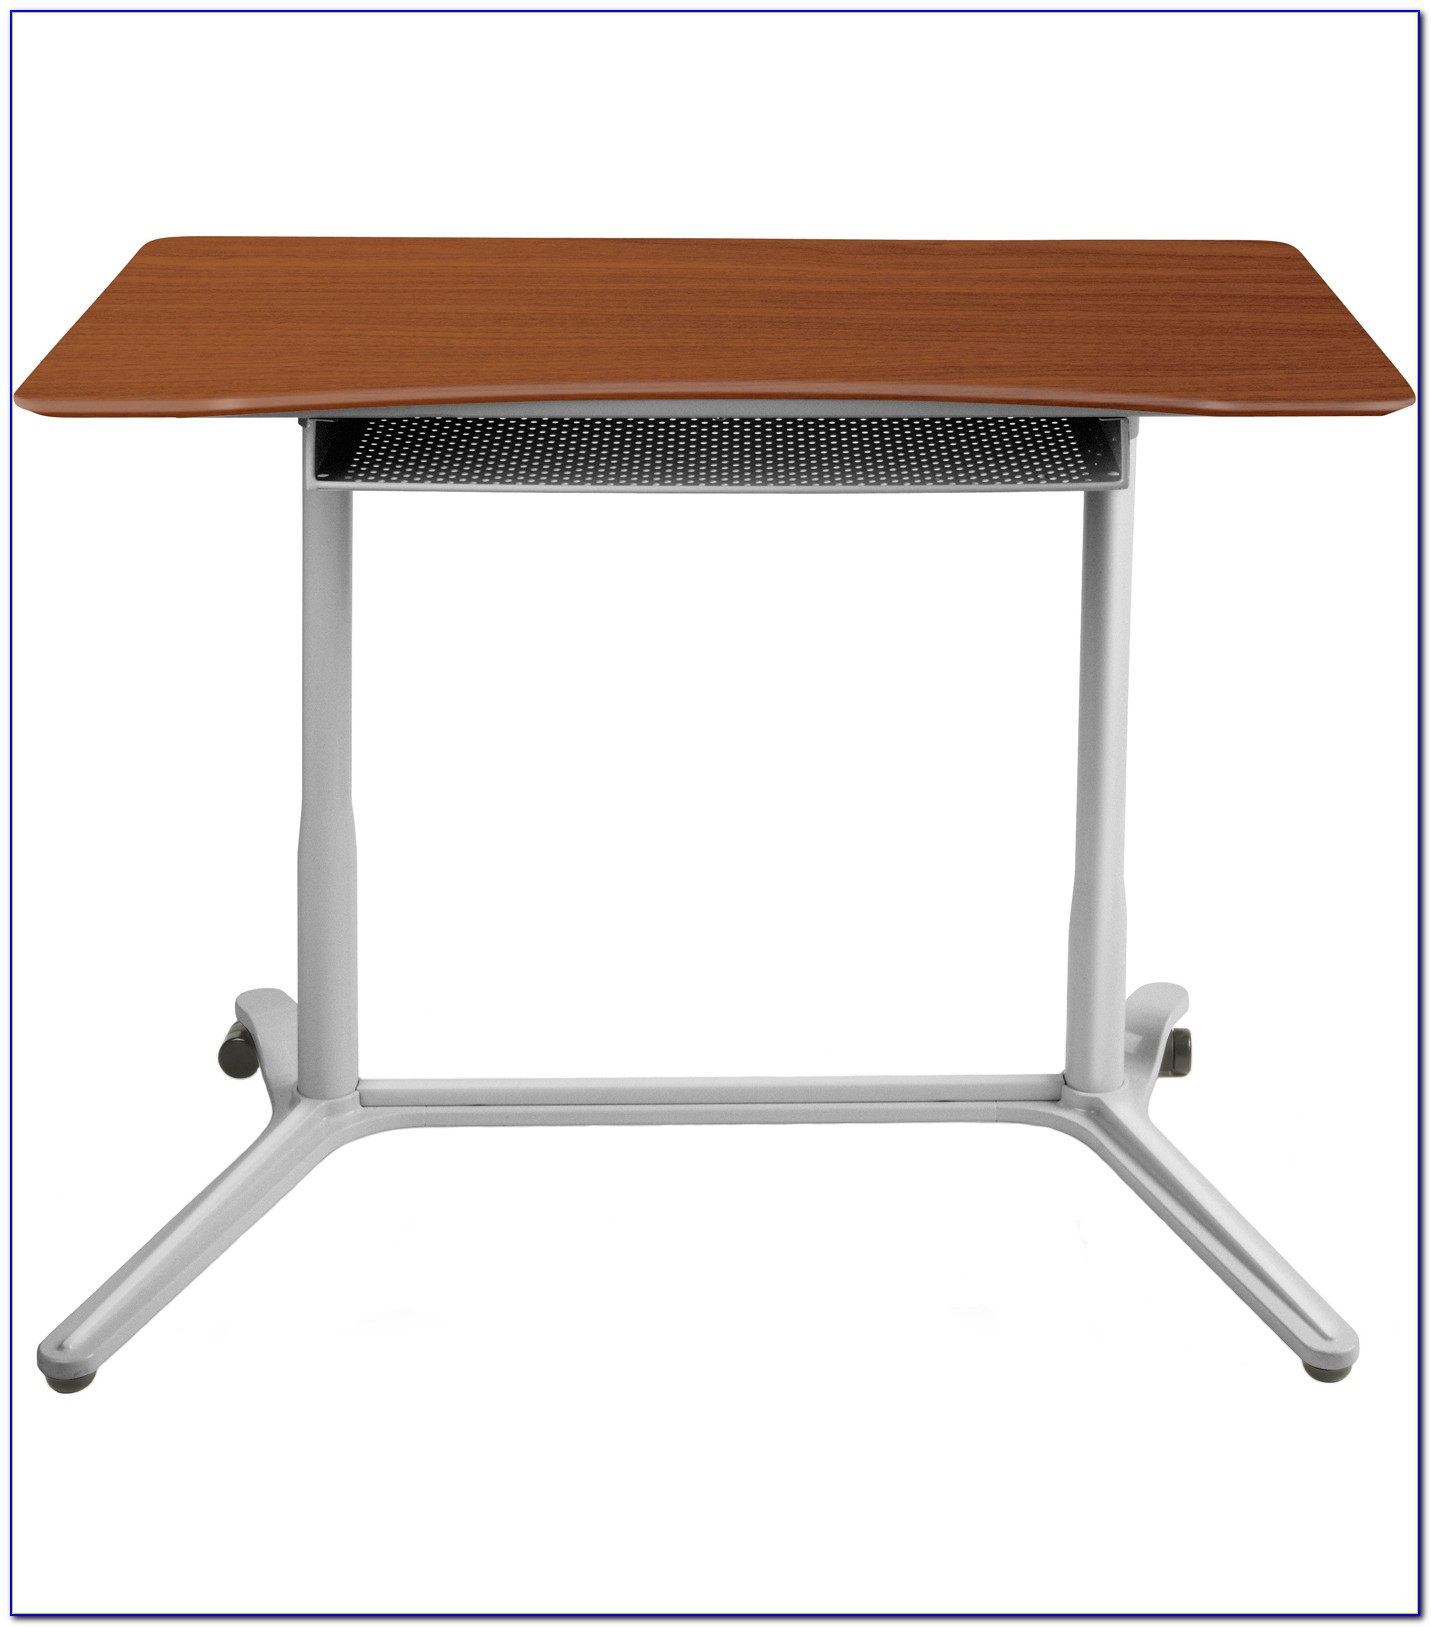 Adjustable Desks For Standing And Sitting Canada